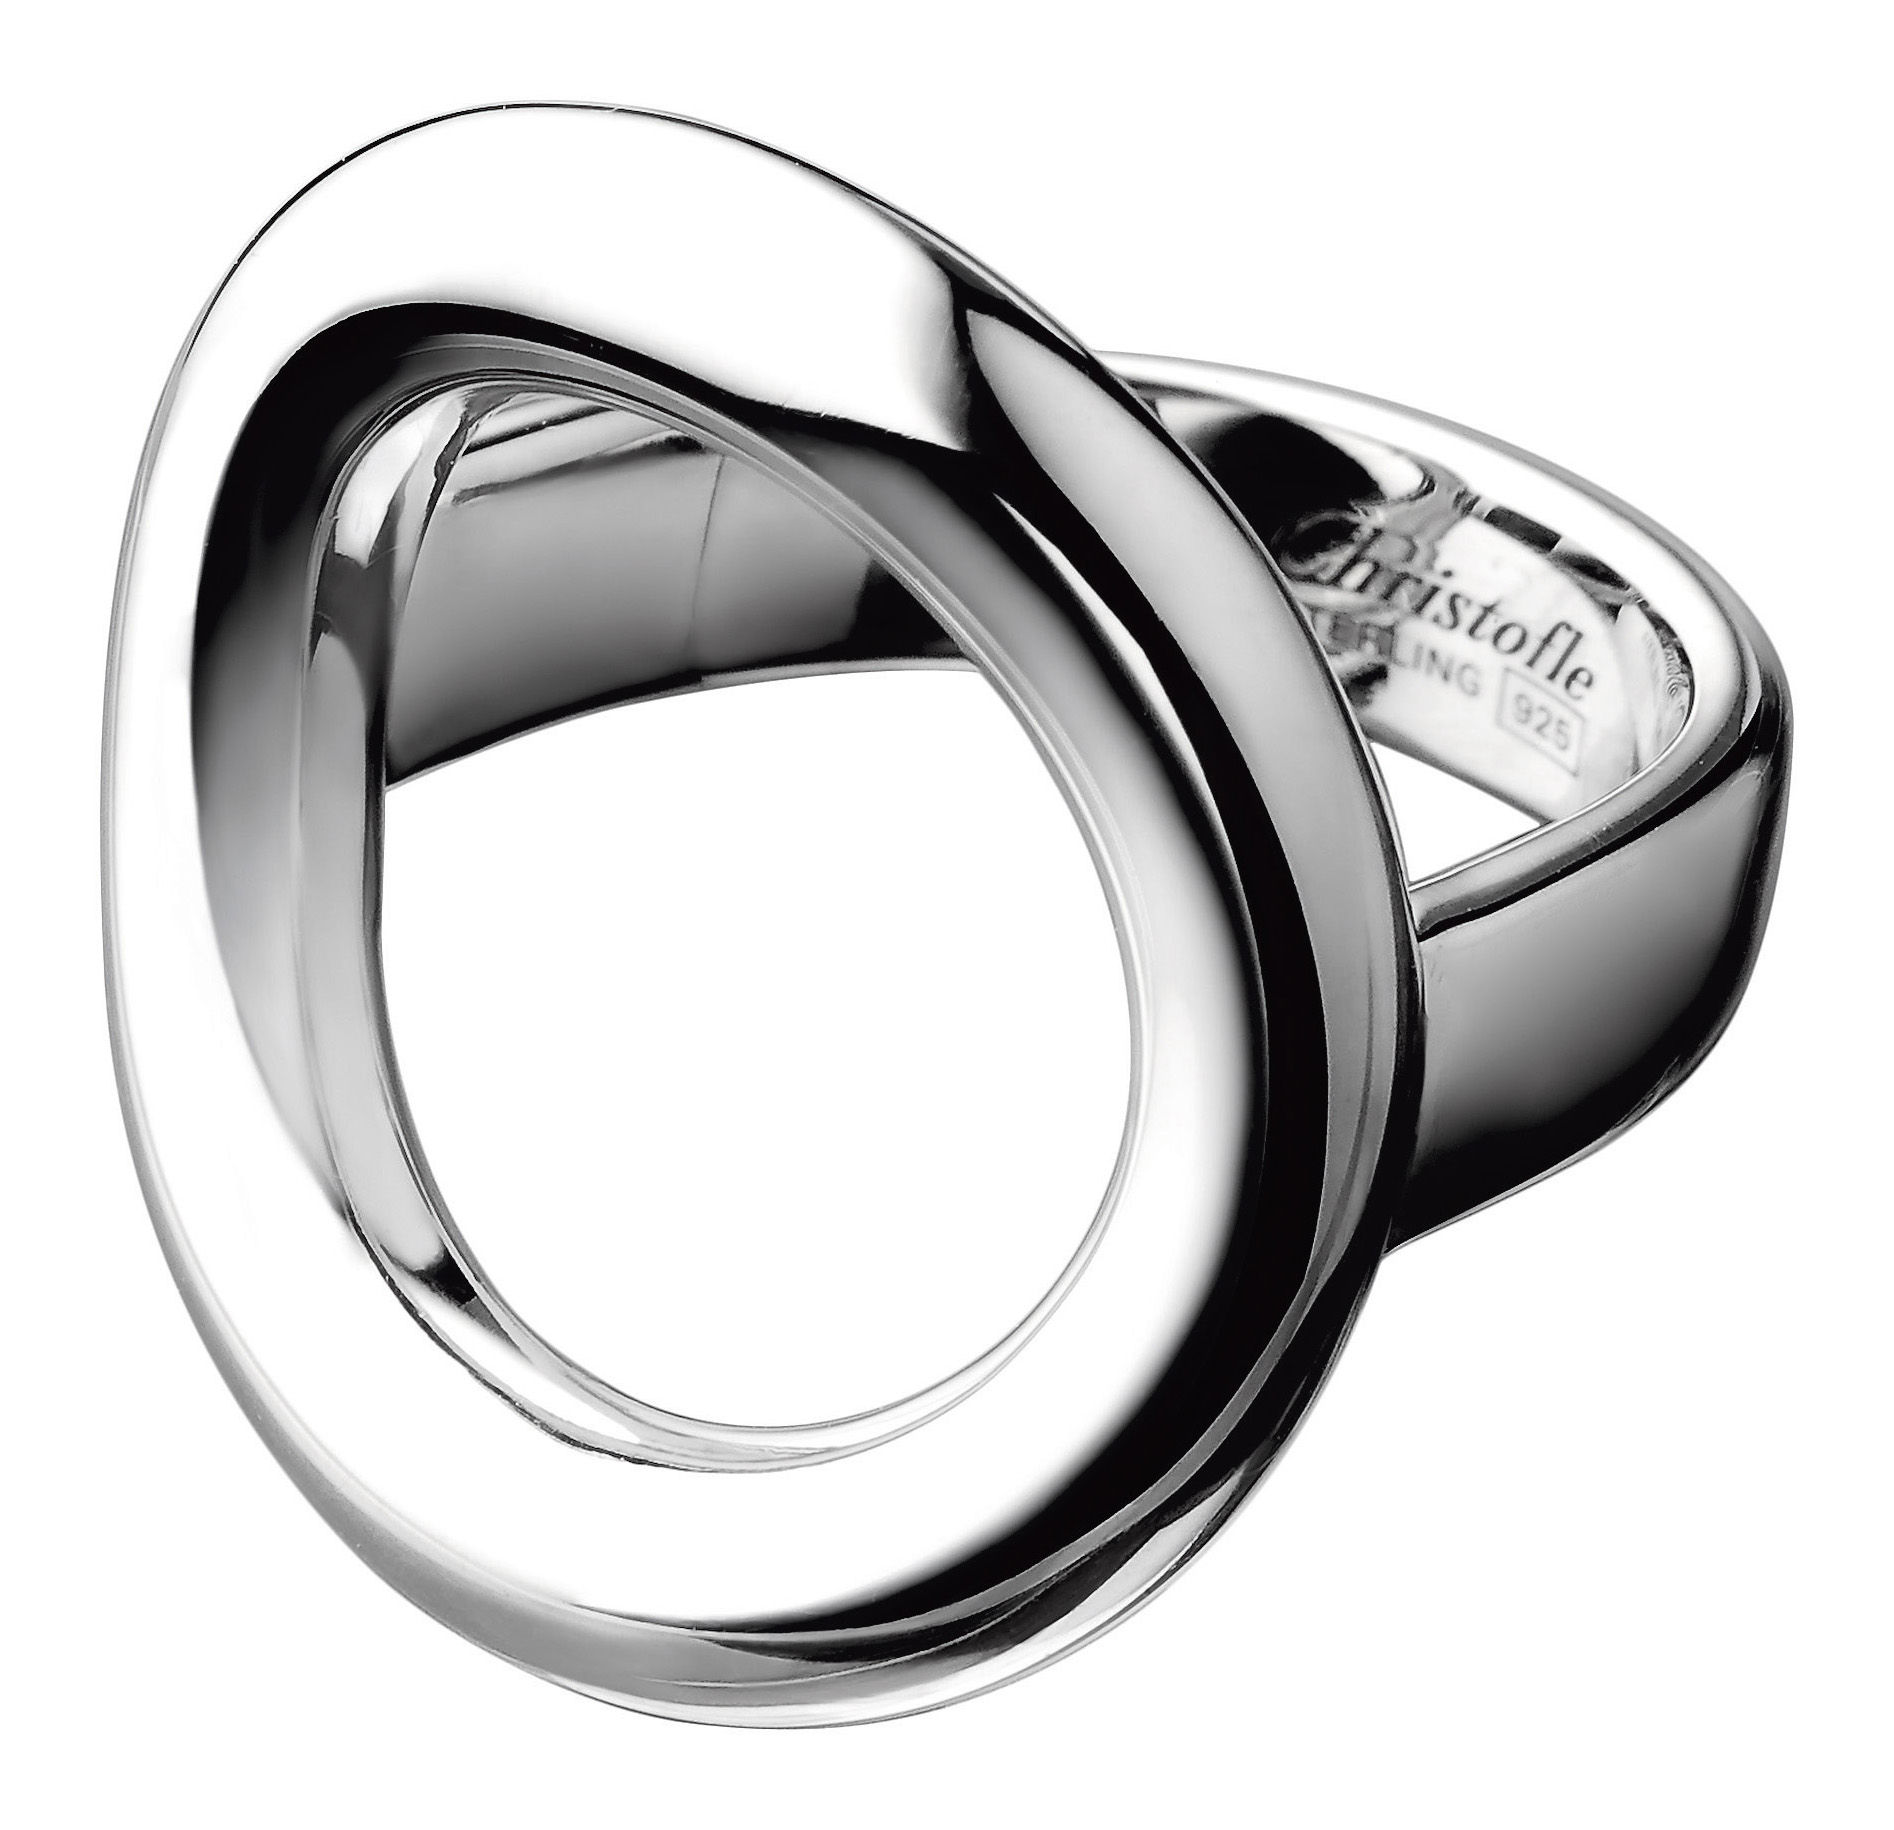 Accessories -  Jewellery - Collection 925 - Anneau Ring - By Andrée Putman by Christofle - Silver - Size 53 - Solid silver